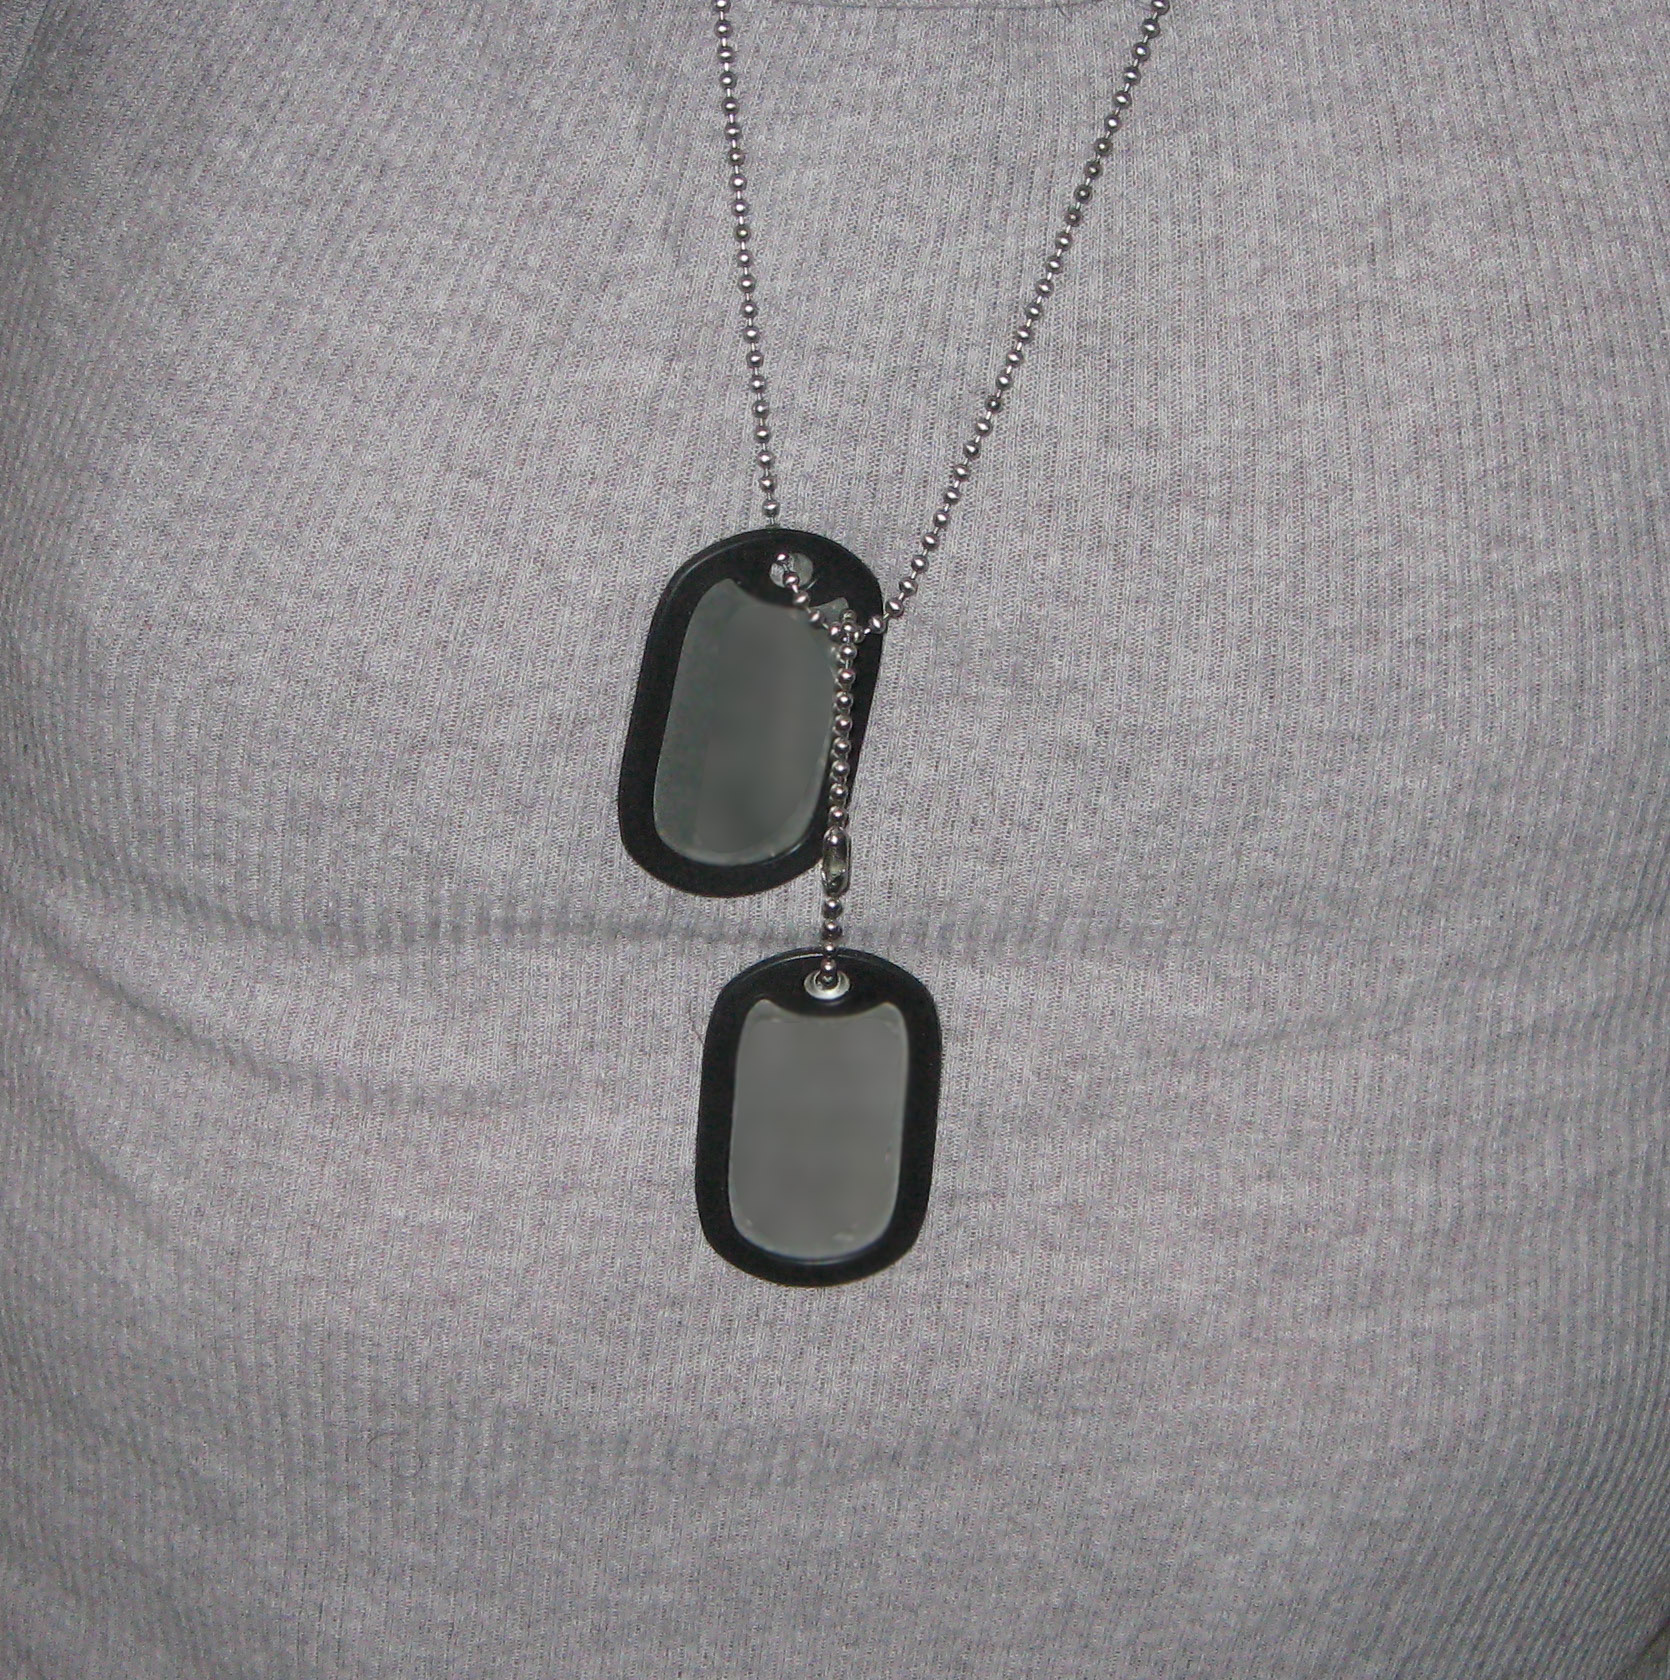 Tag-Z Dog Tags